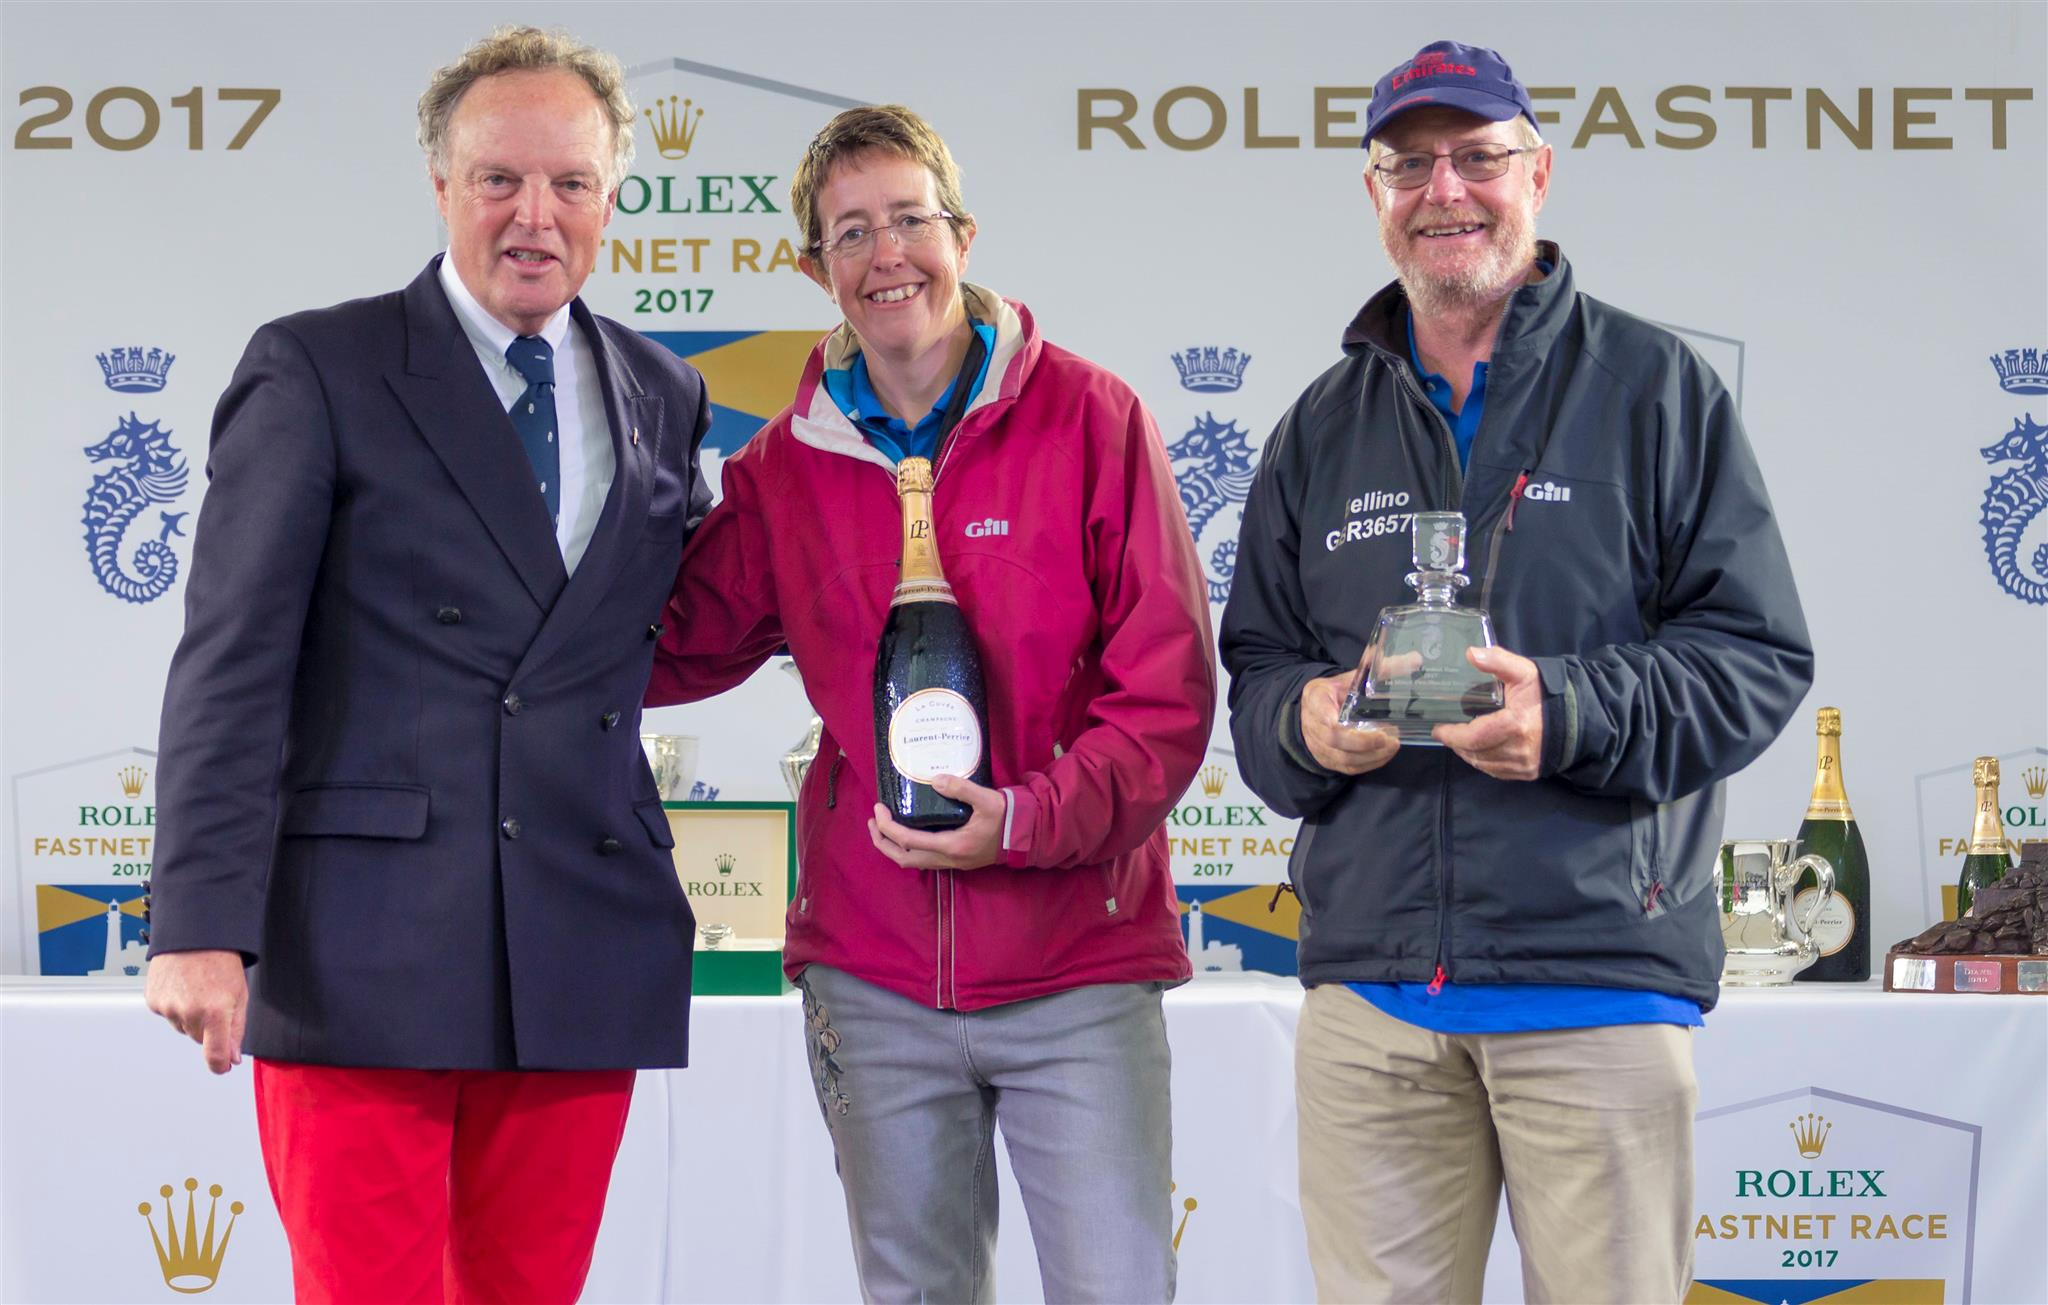 Deb Fish and Rob Craigie, of the winning Mixed Two-handed yacht and also the Best Female Skipper Overall, Bellino. Credit: ROLEX/Carlo Borlenghi